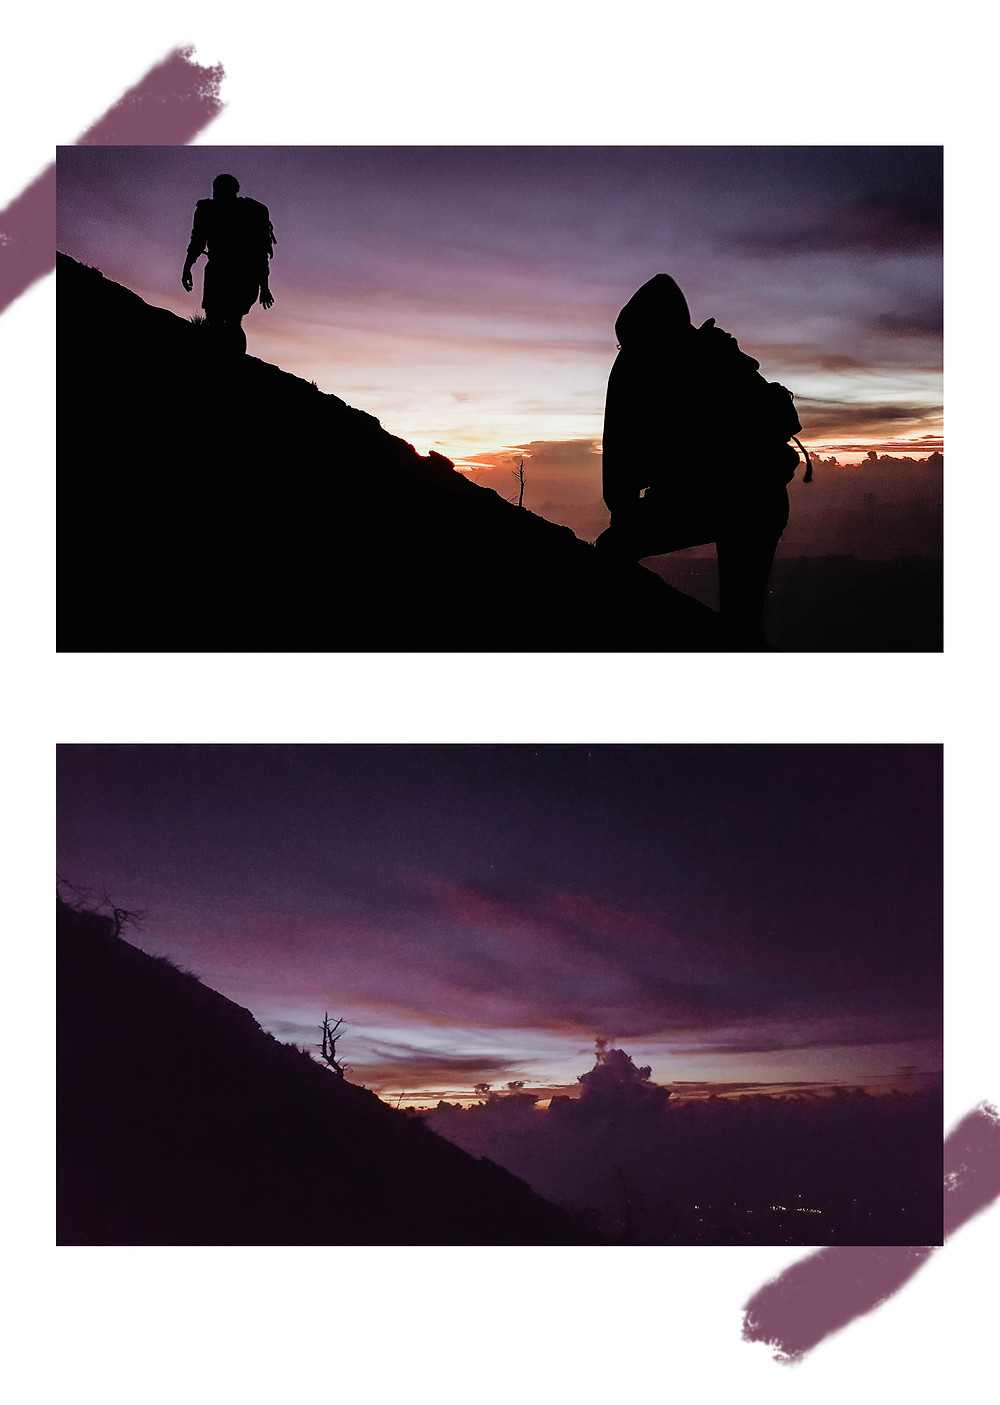 Climbing Agung Volcano at night